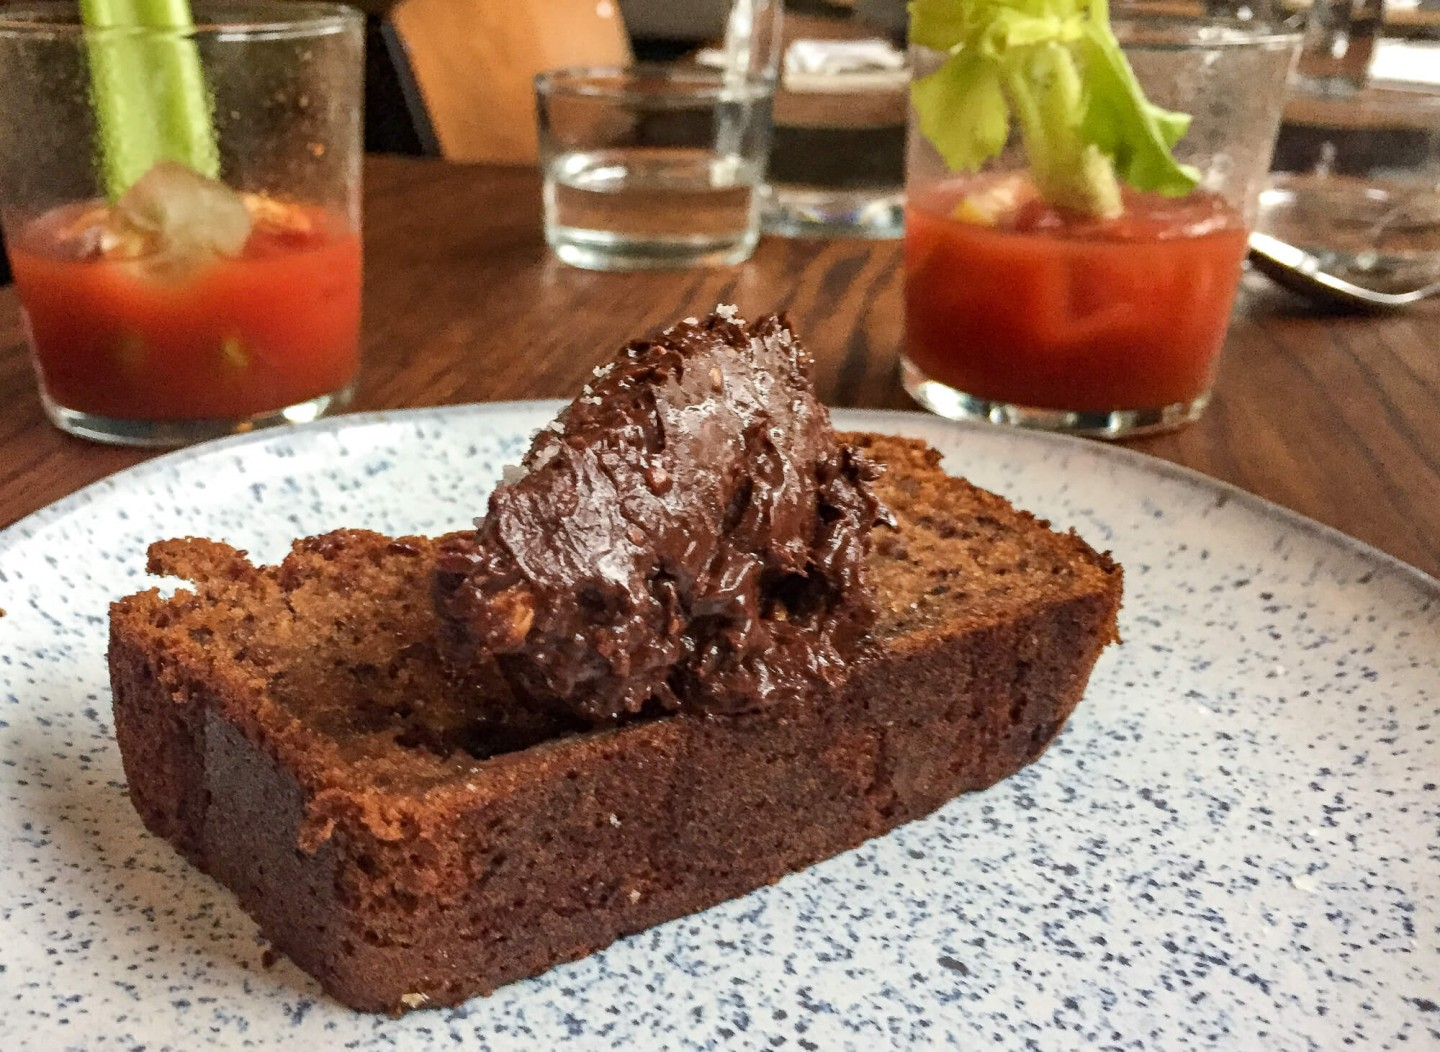 Sharing one of my favourite restaurants for brunch in London. Salon in Brixton serves a lovely small menu of brunch dishes including this epic banana bread and homemade nutella!